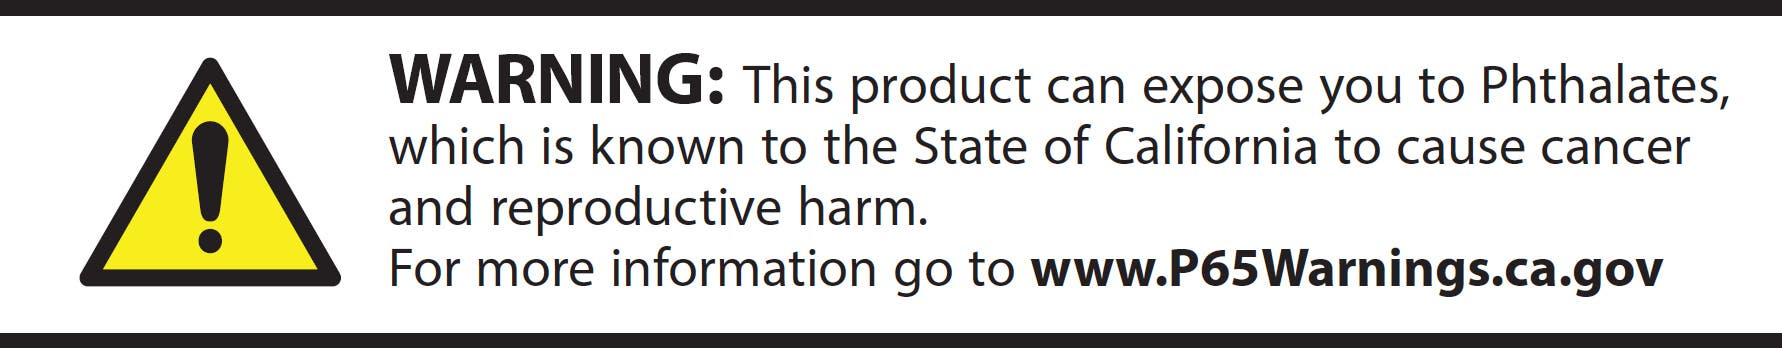 Warning: This product can expose you to Phthalates, which is known to the State of California to cause cancer and reproductive harm.